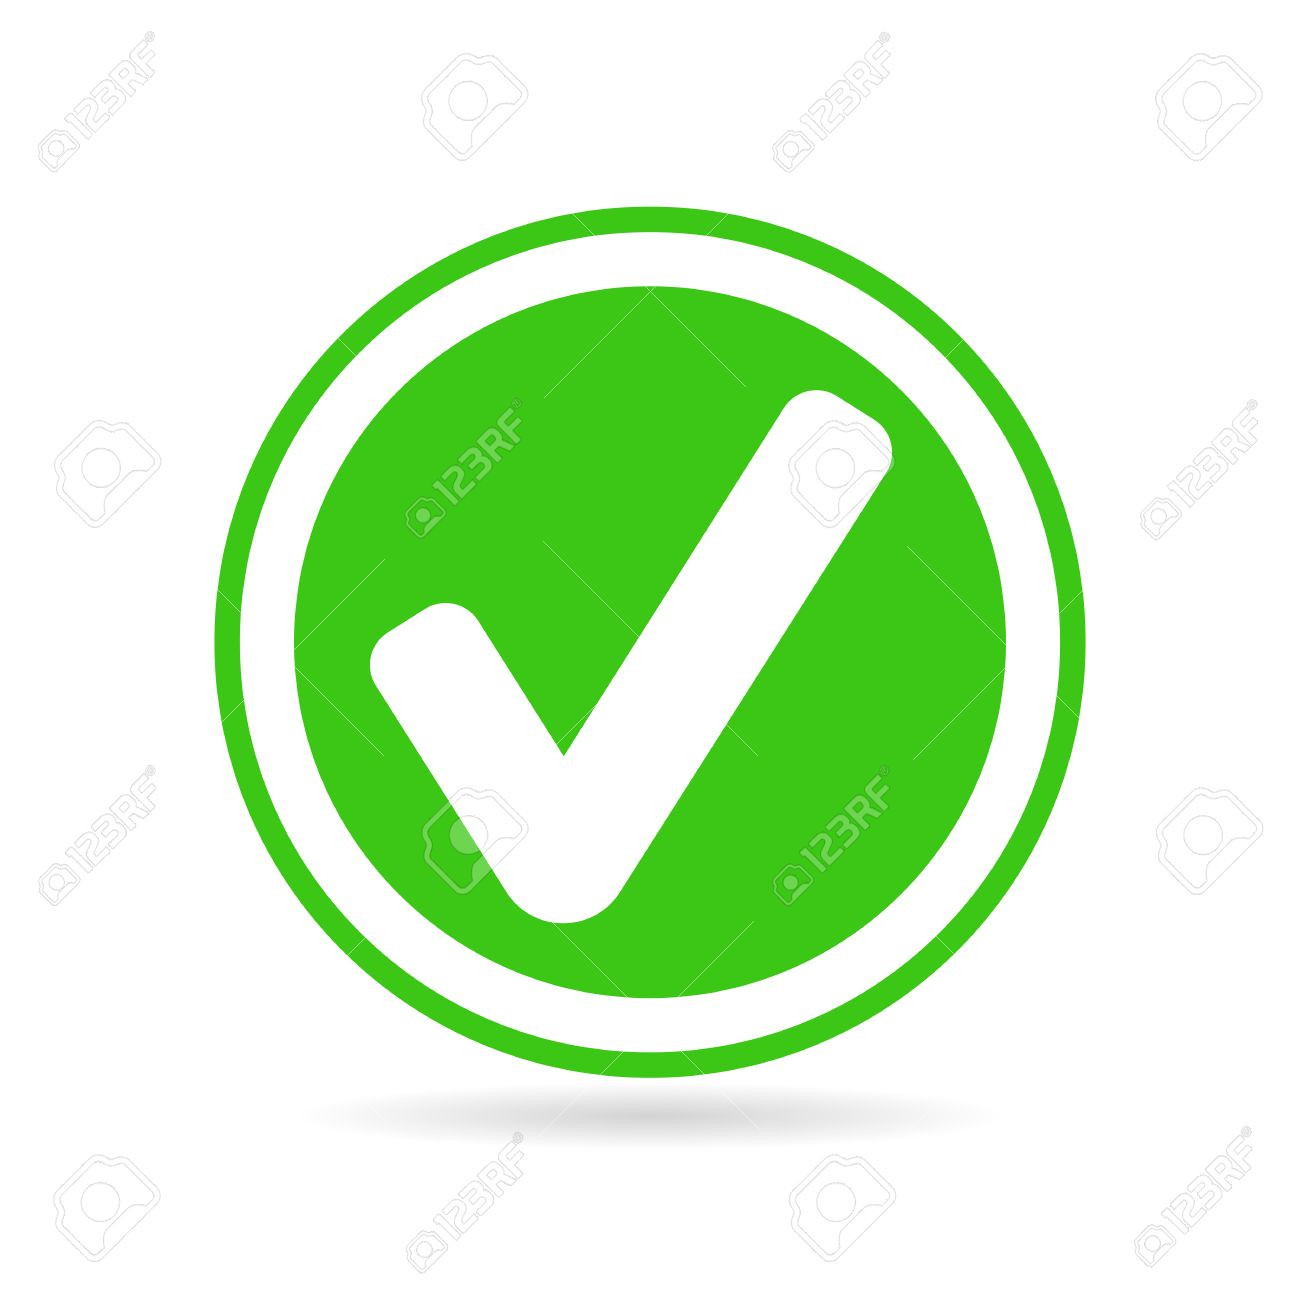 1300x1300 Check Mark Or Tick Icon In Green Circle Royalty Free Cliparts